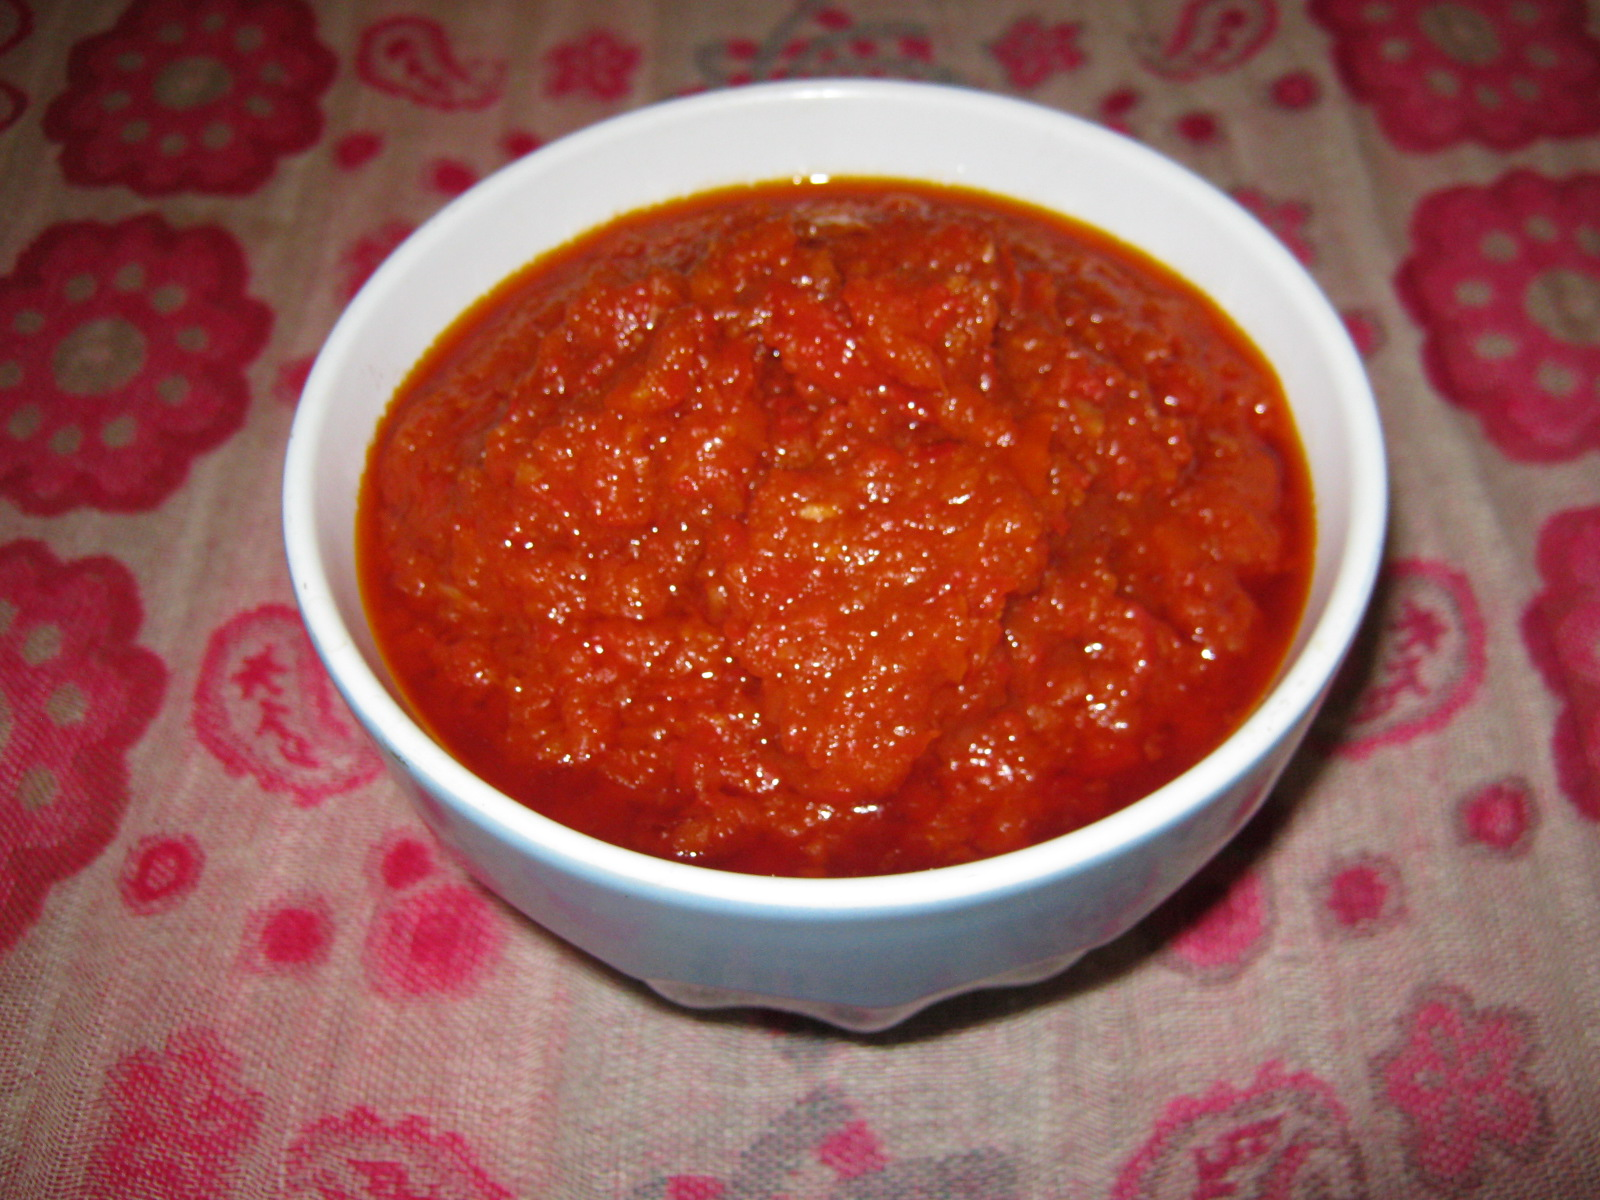 Hot Ata dindin - Nigerian fried pepper sauce